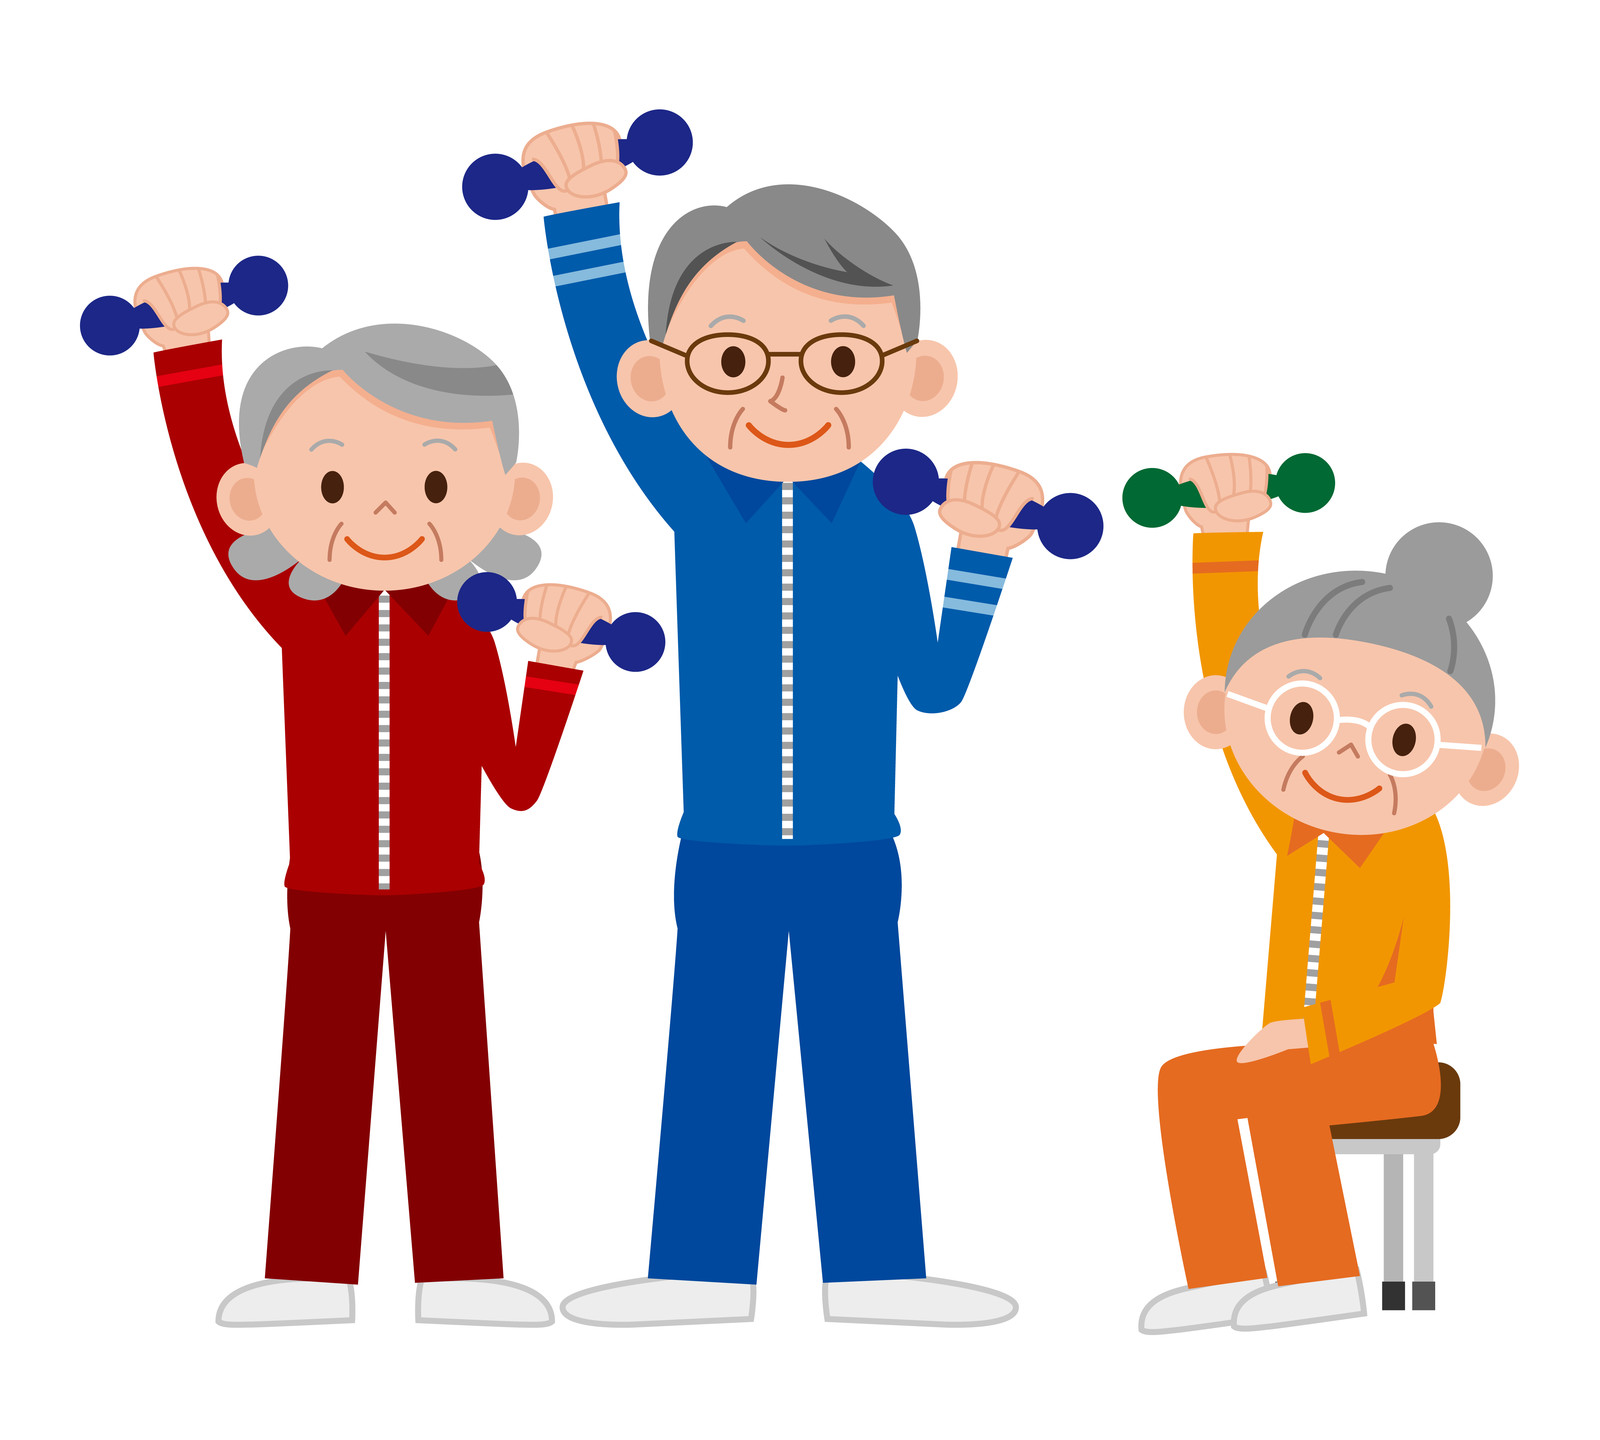 Exercise images download best. Free elderly clipart